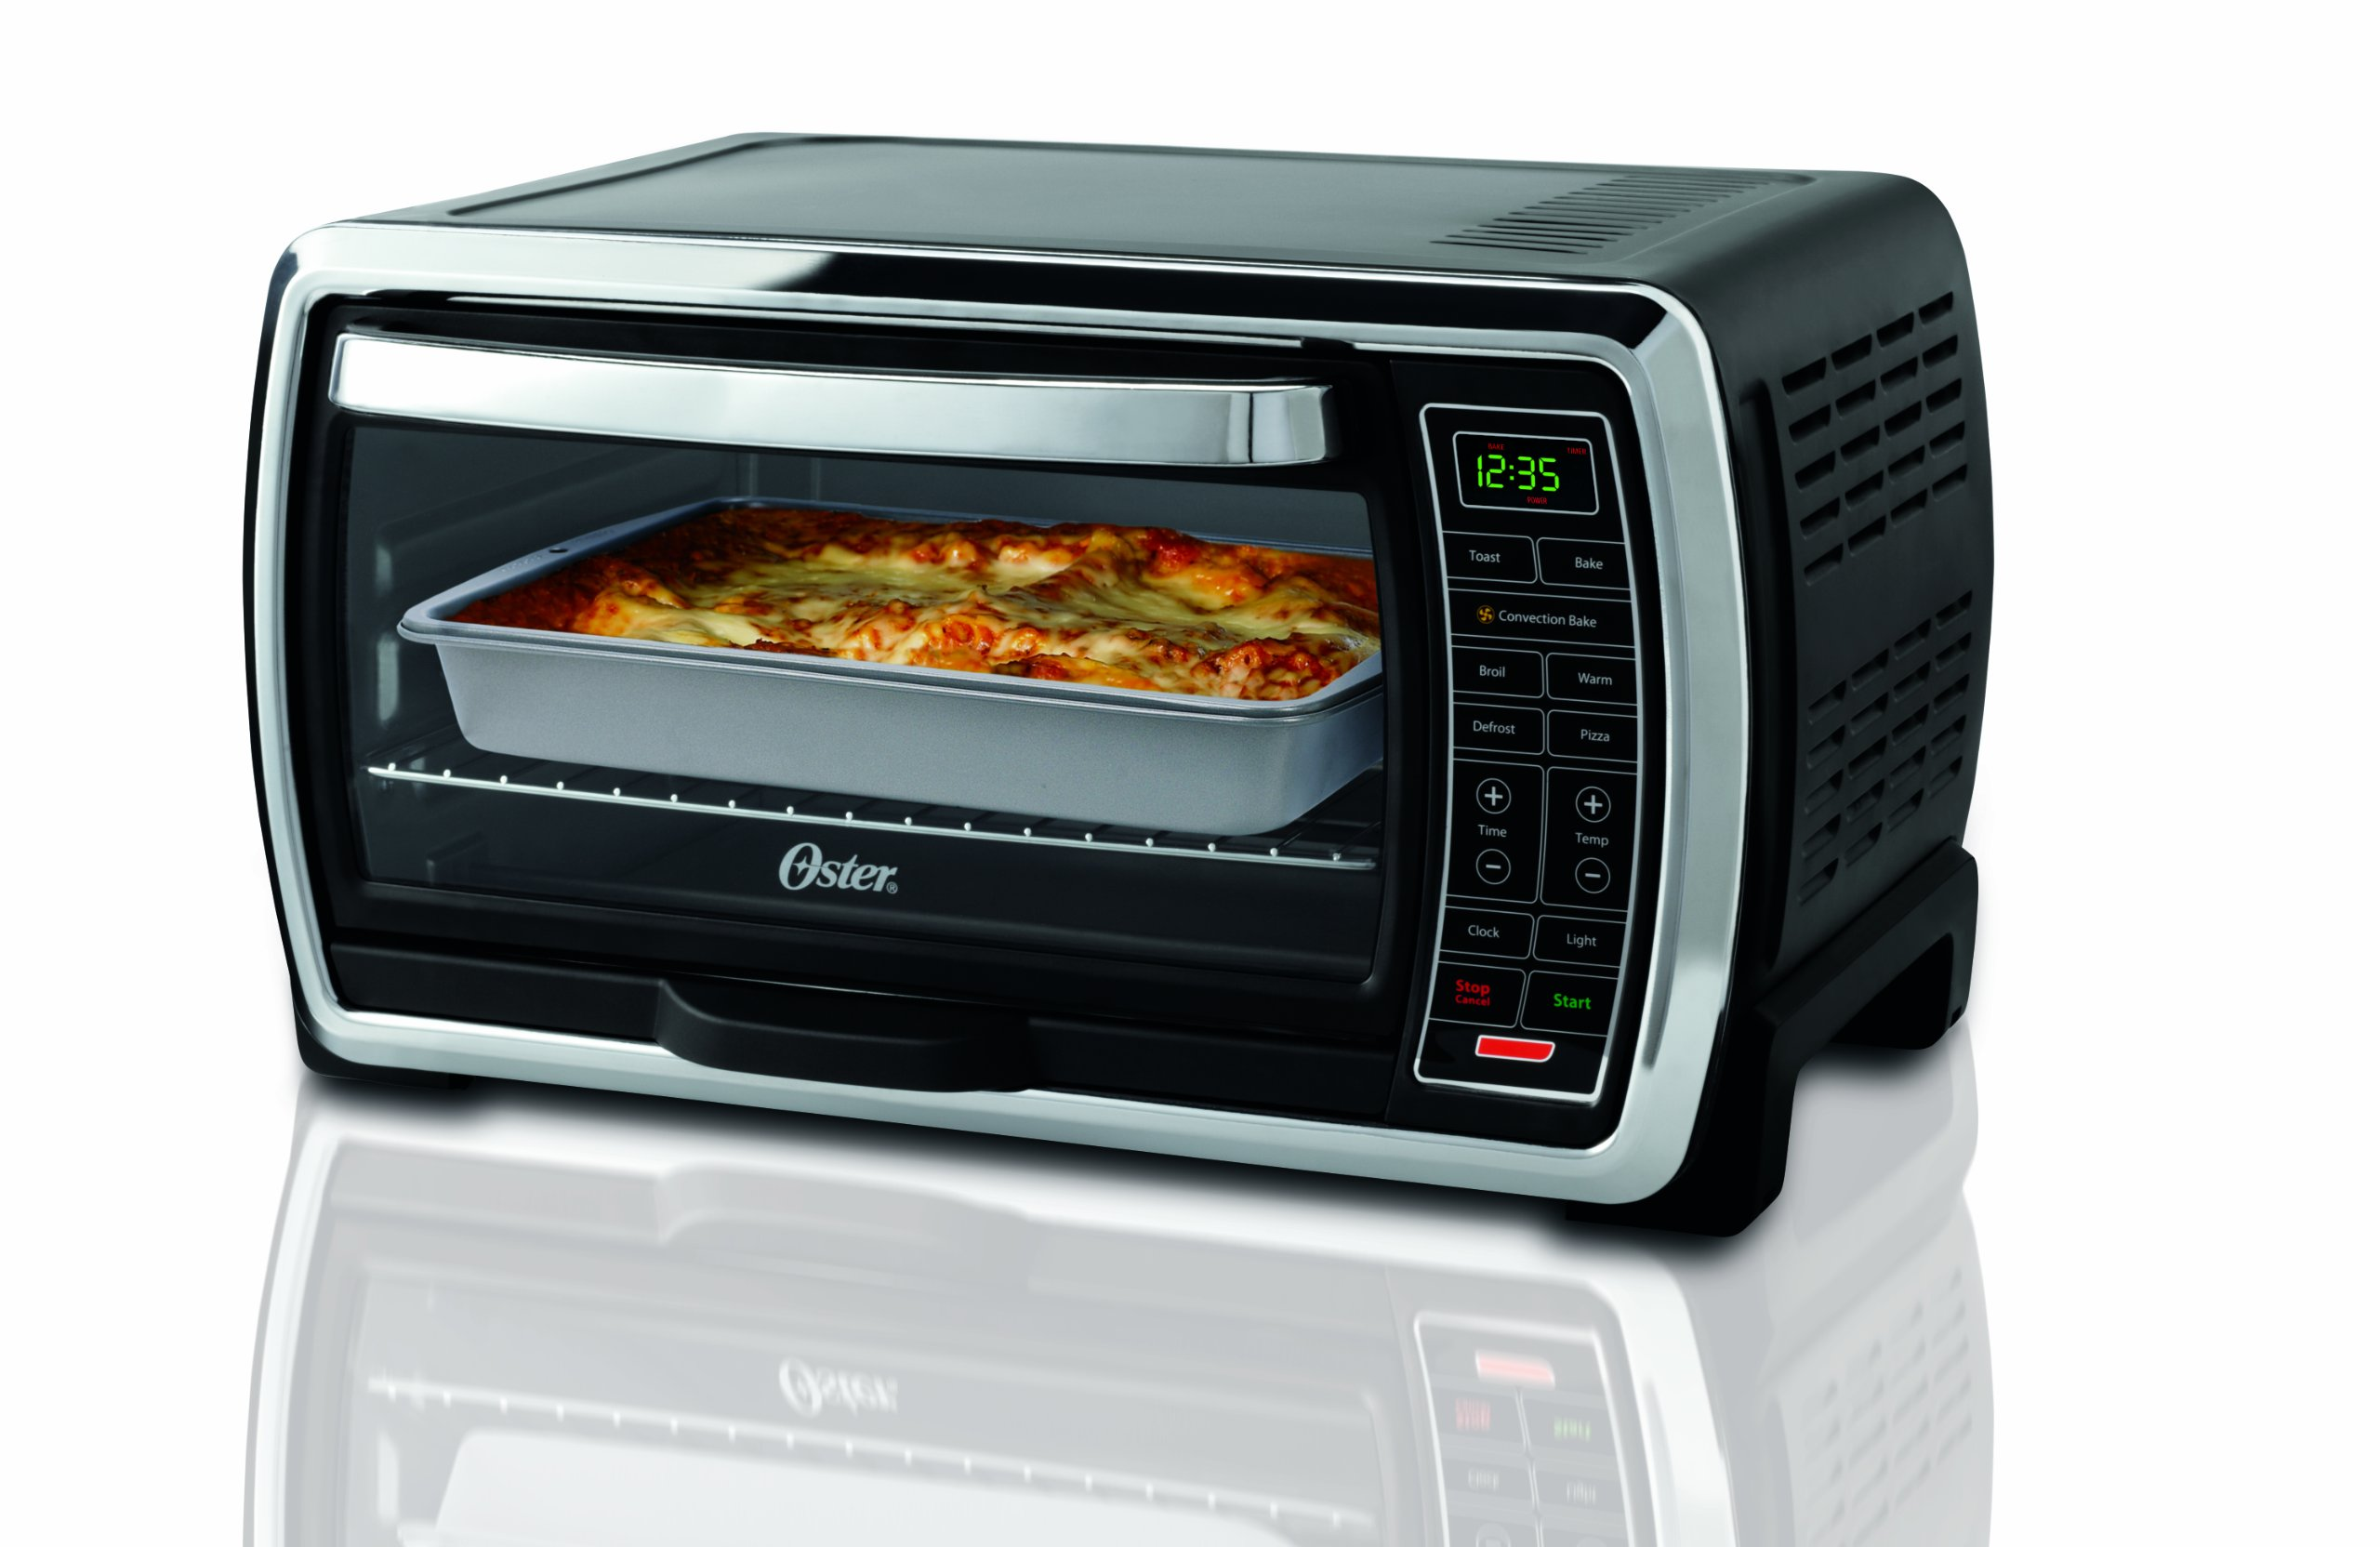 Countertop Convection Oven Toaster : ... Countertop 6-Slice Digital Convection Toaster Oven Black... eBay